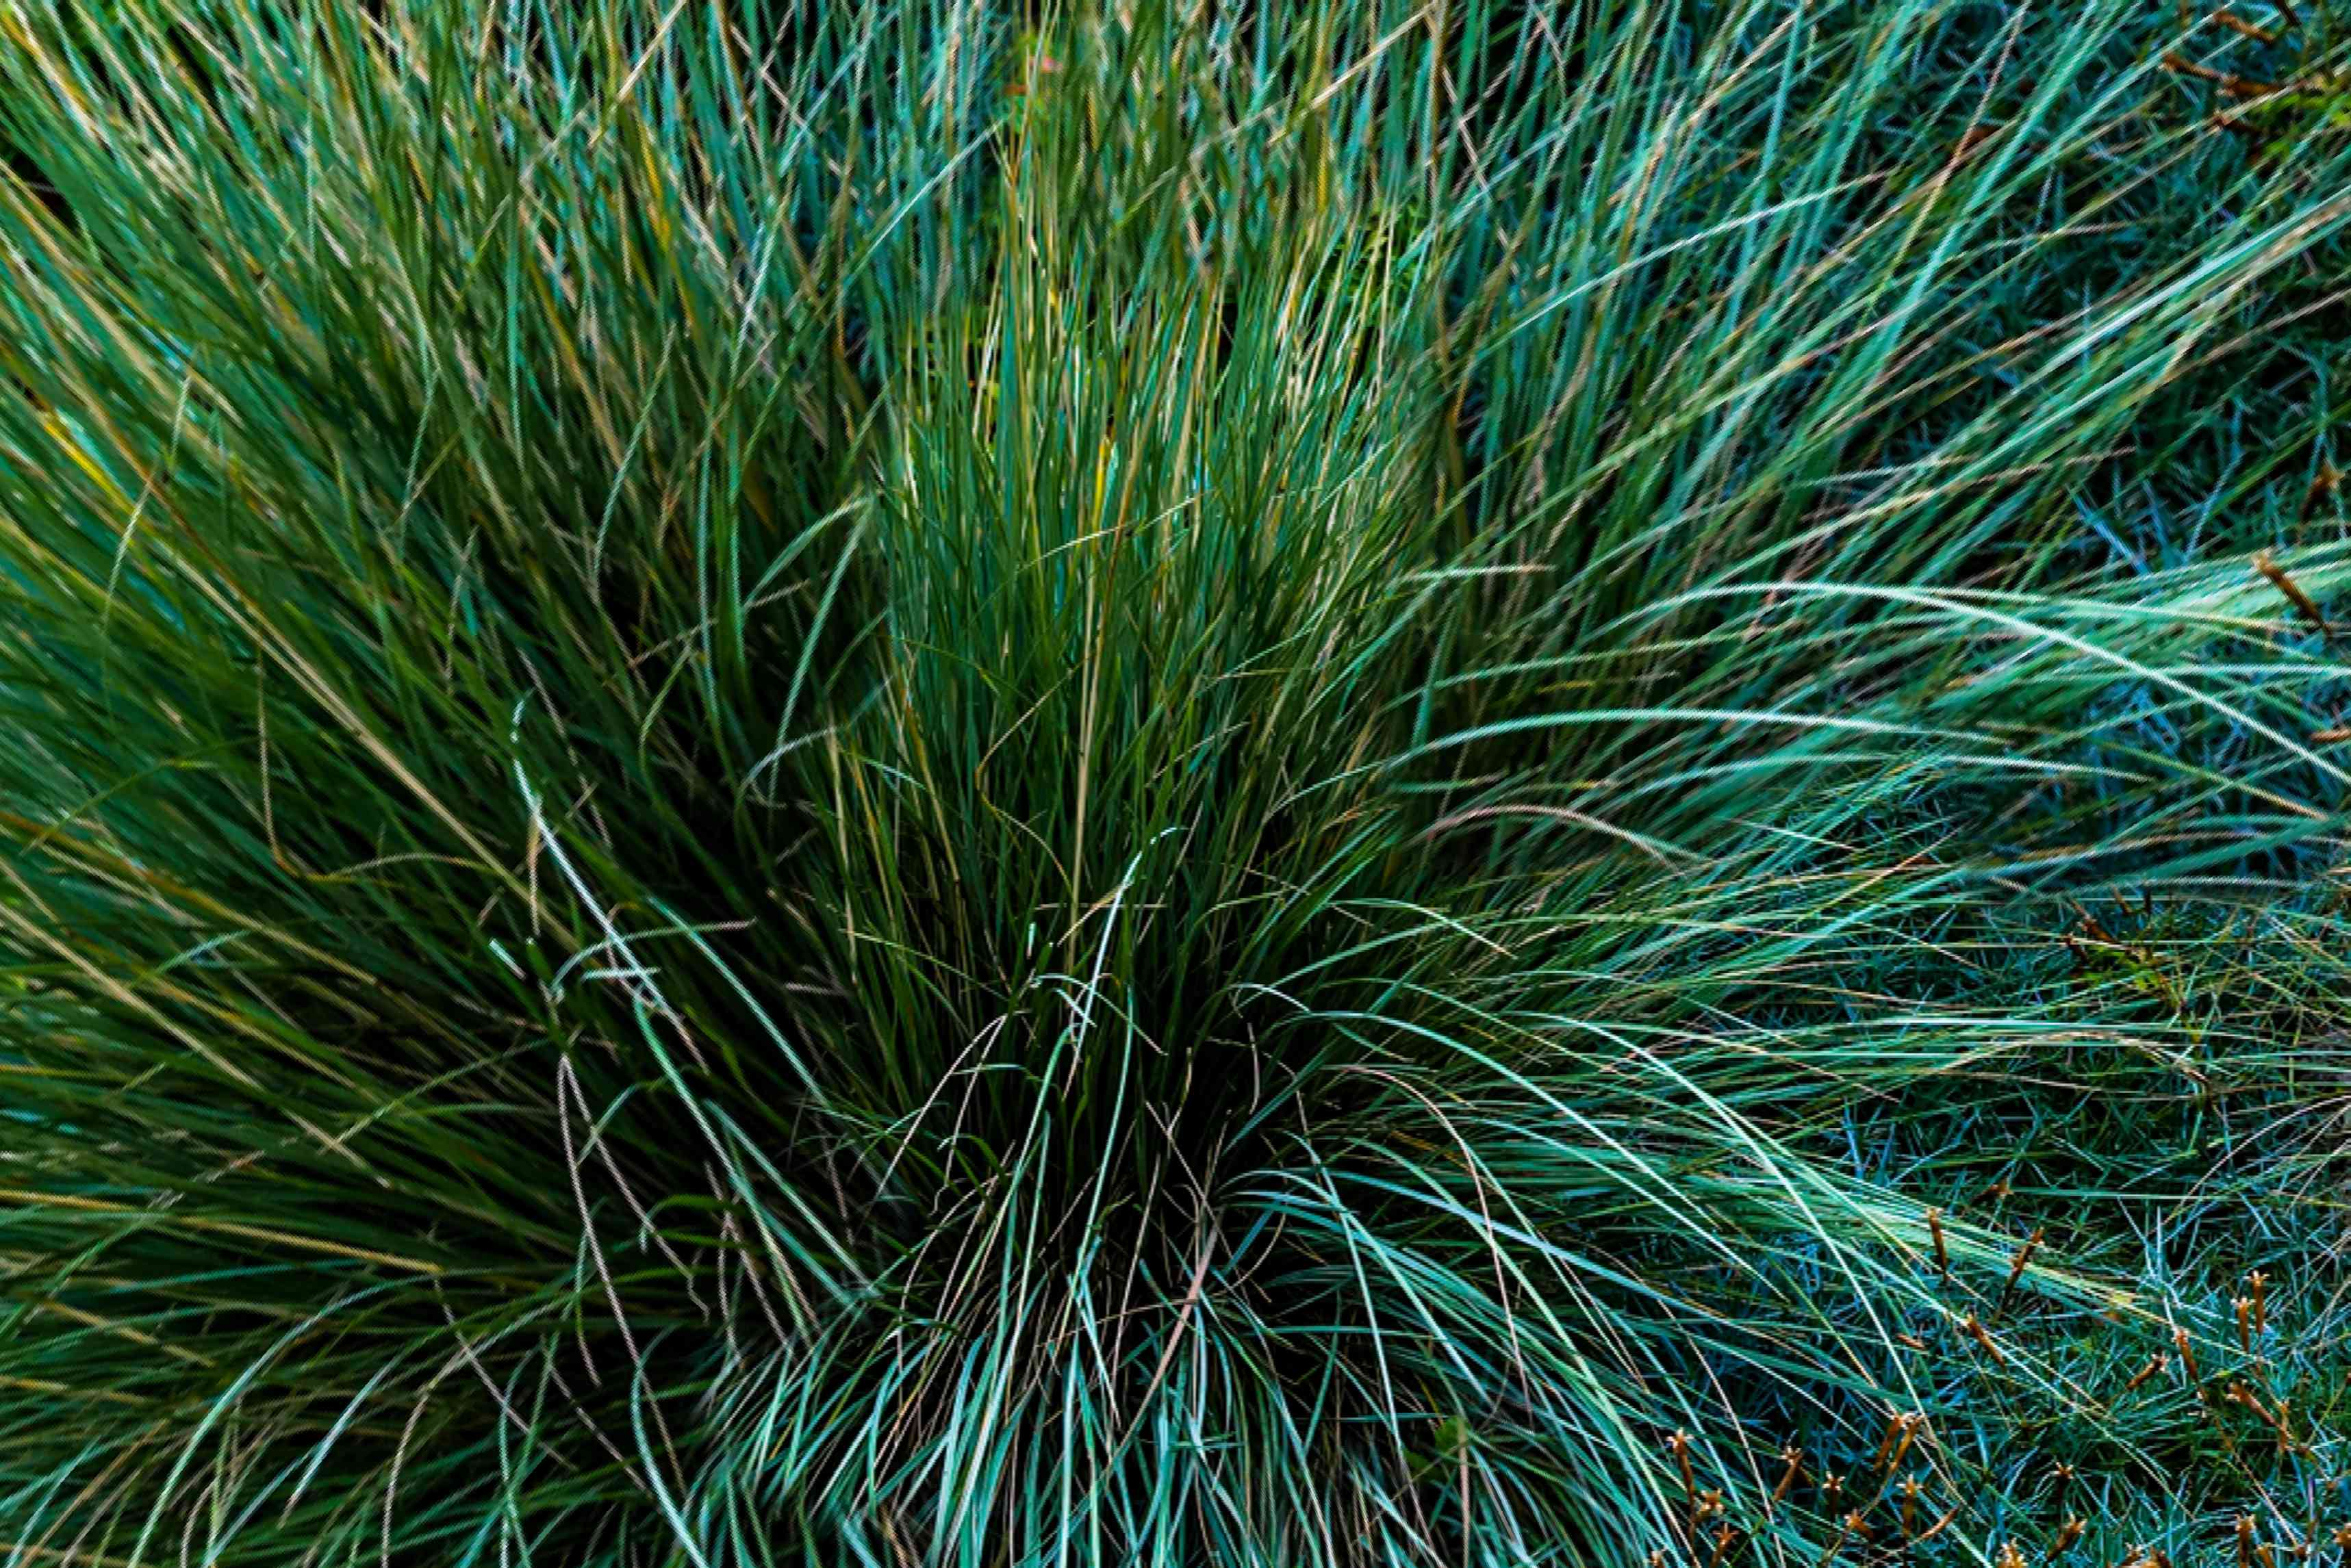 Ornamental grass with long thin blades for cool seasons